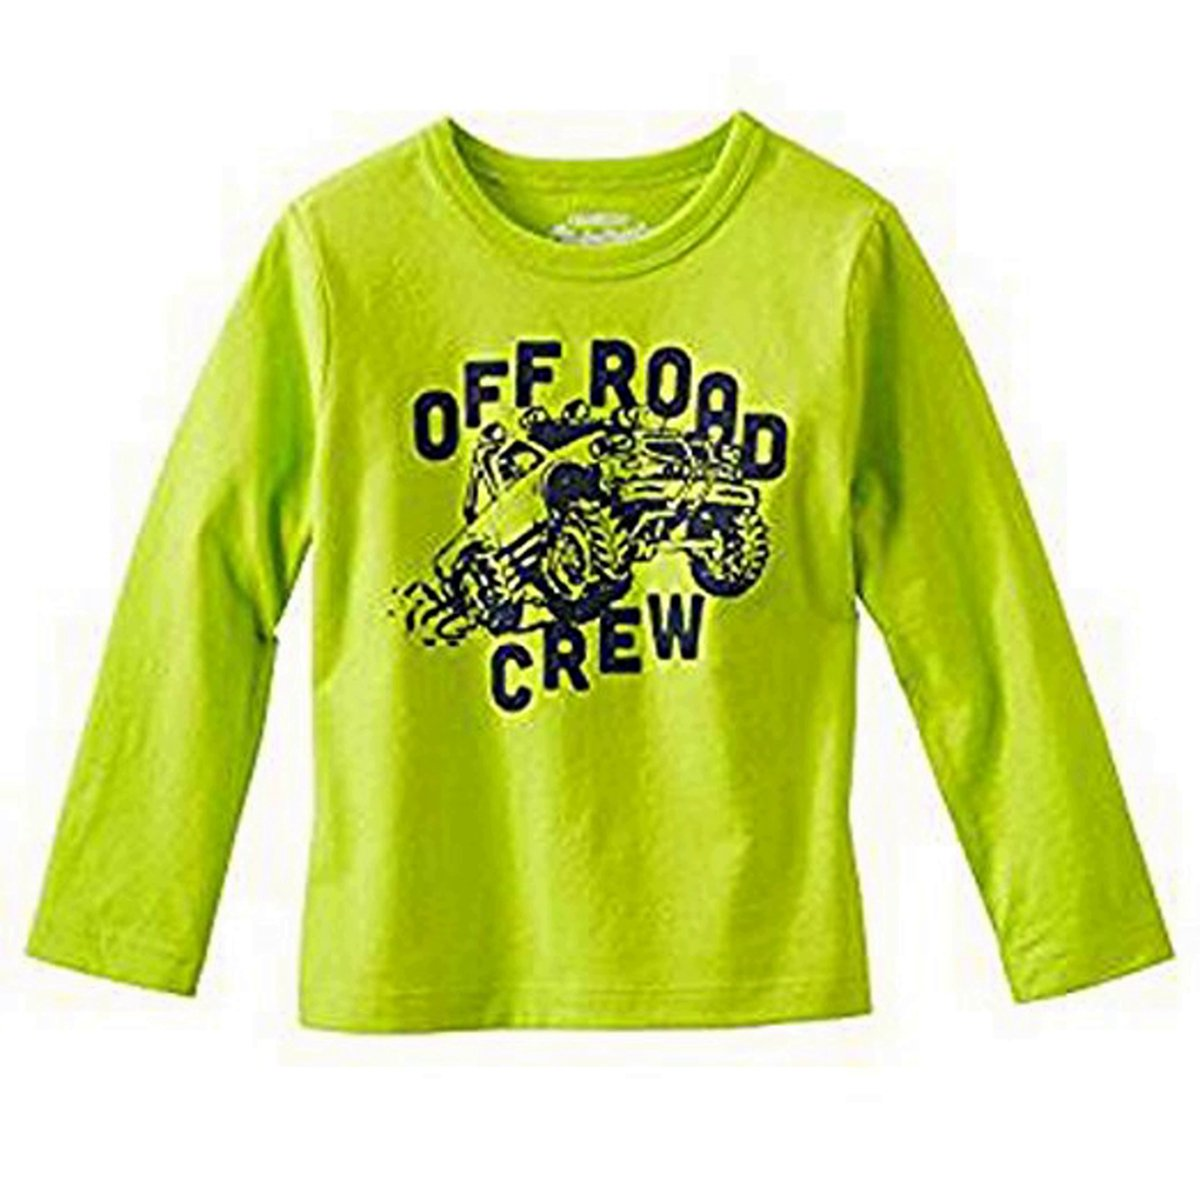 OshKosh Originals Graphic Tee Off Road Crew Lime Green Size 10